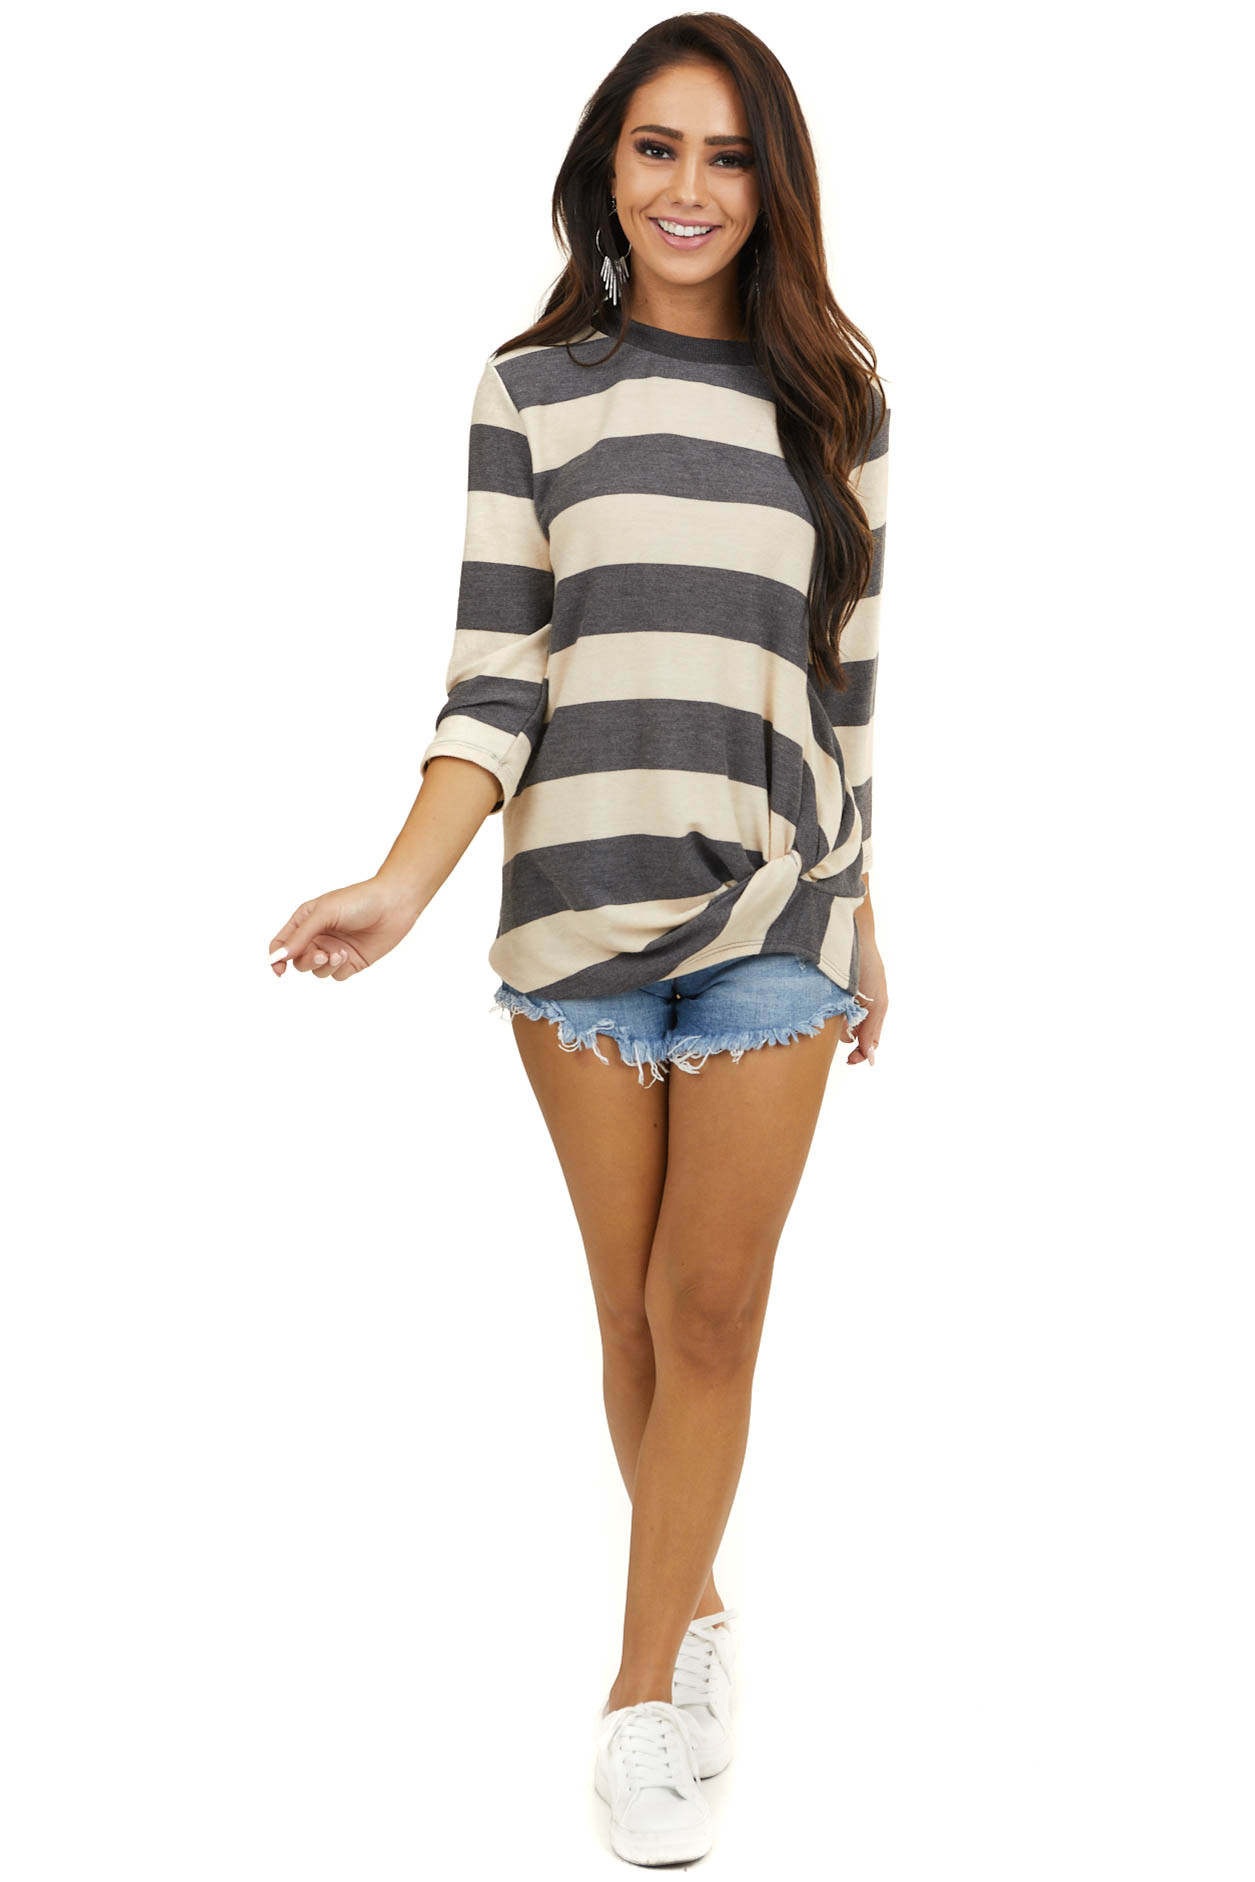 Beige and Charcoal Striped 3/4 Sleeves Sweater with Twist